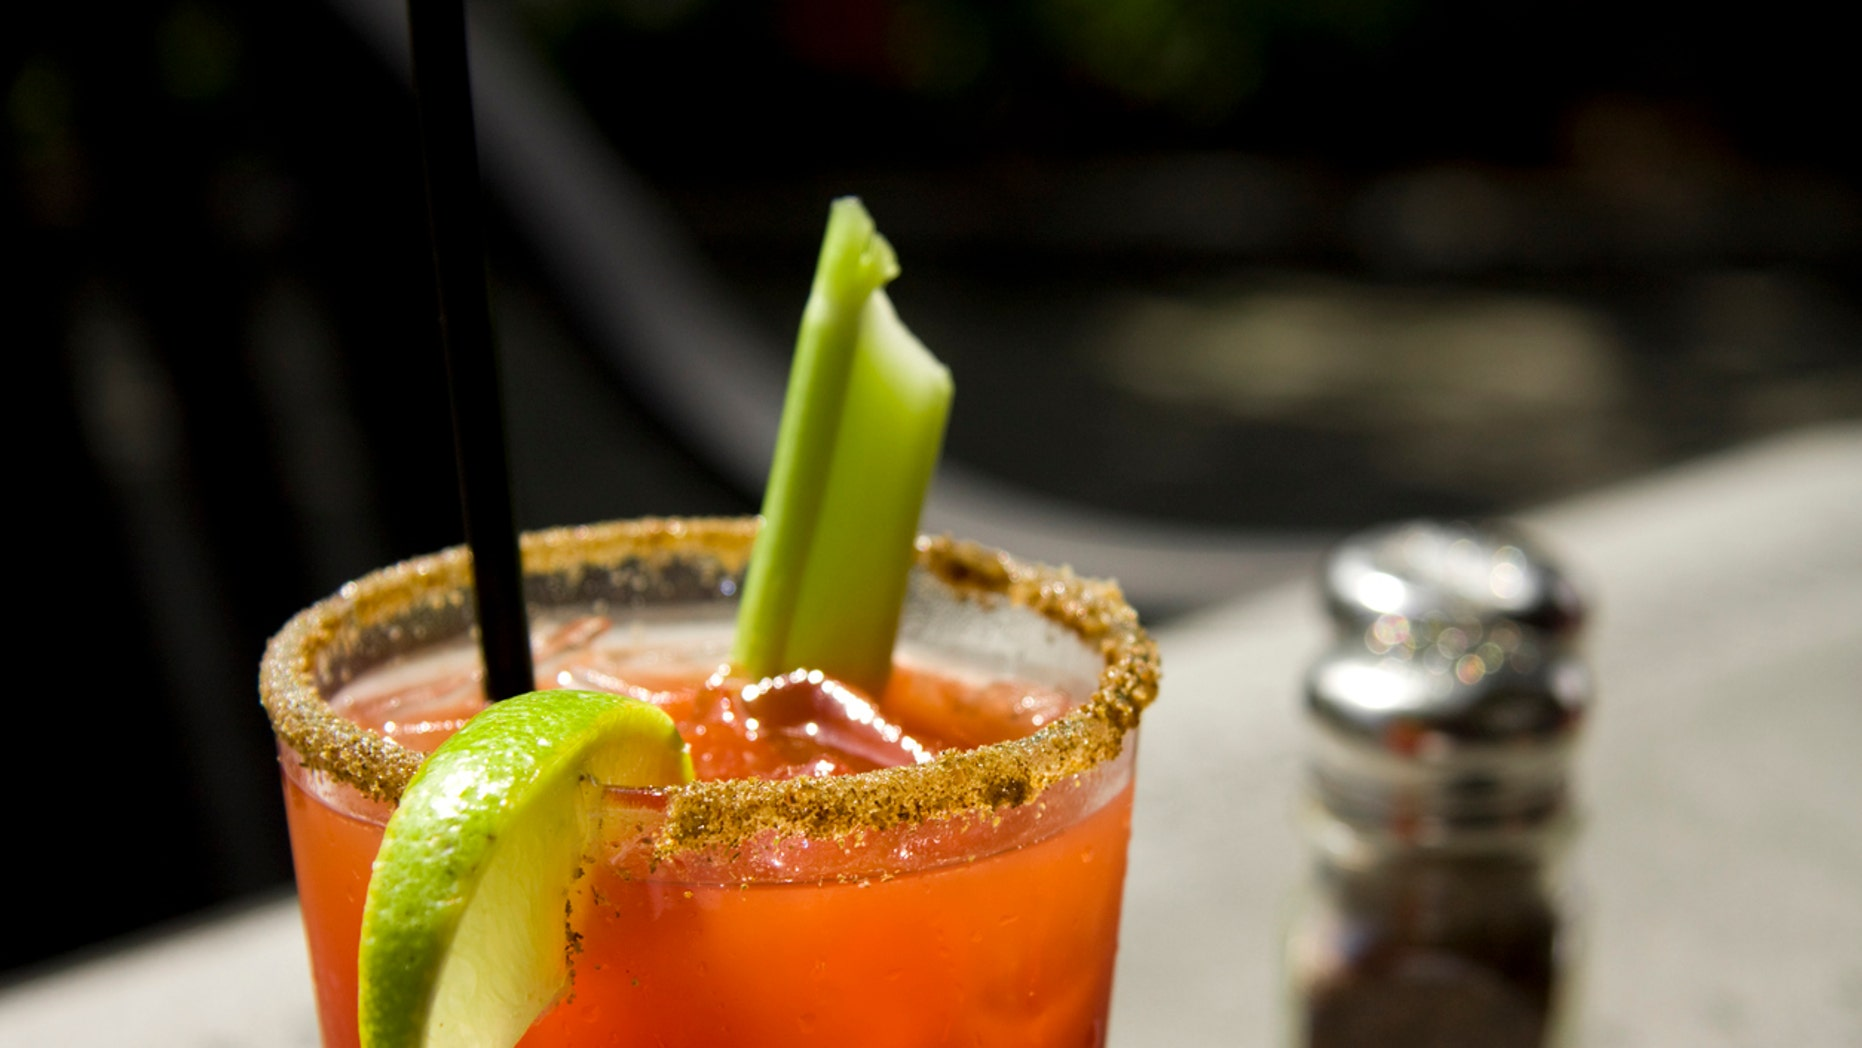 """""""Close up of a cool caesar or bloody mary cocktail drink rimmed with spice and garnished with lime wedge and celery stick. Shallow depth of field, good ad copy space."""""""